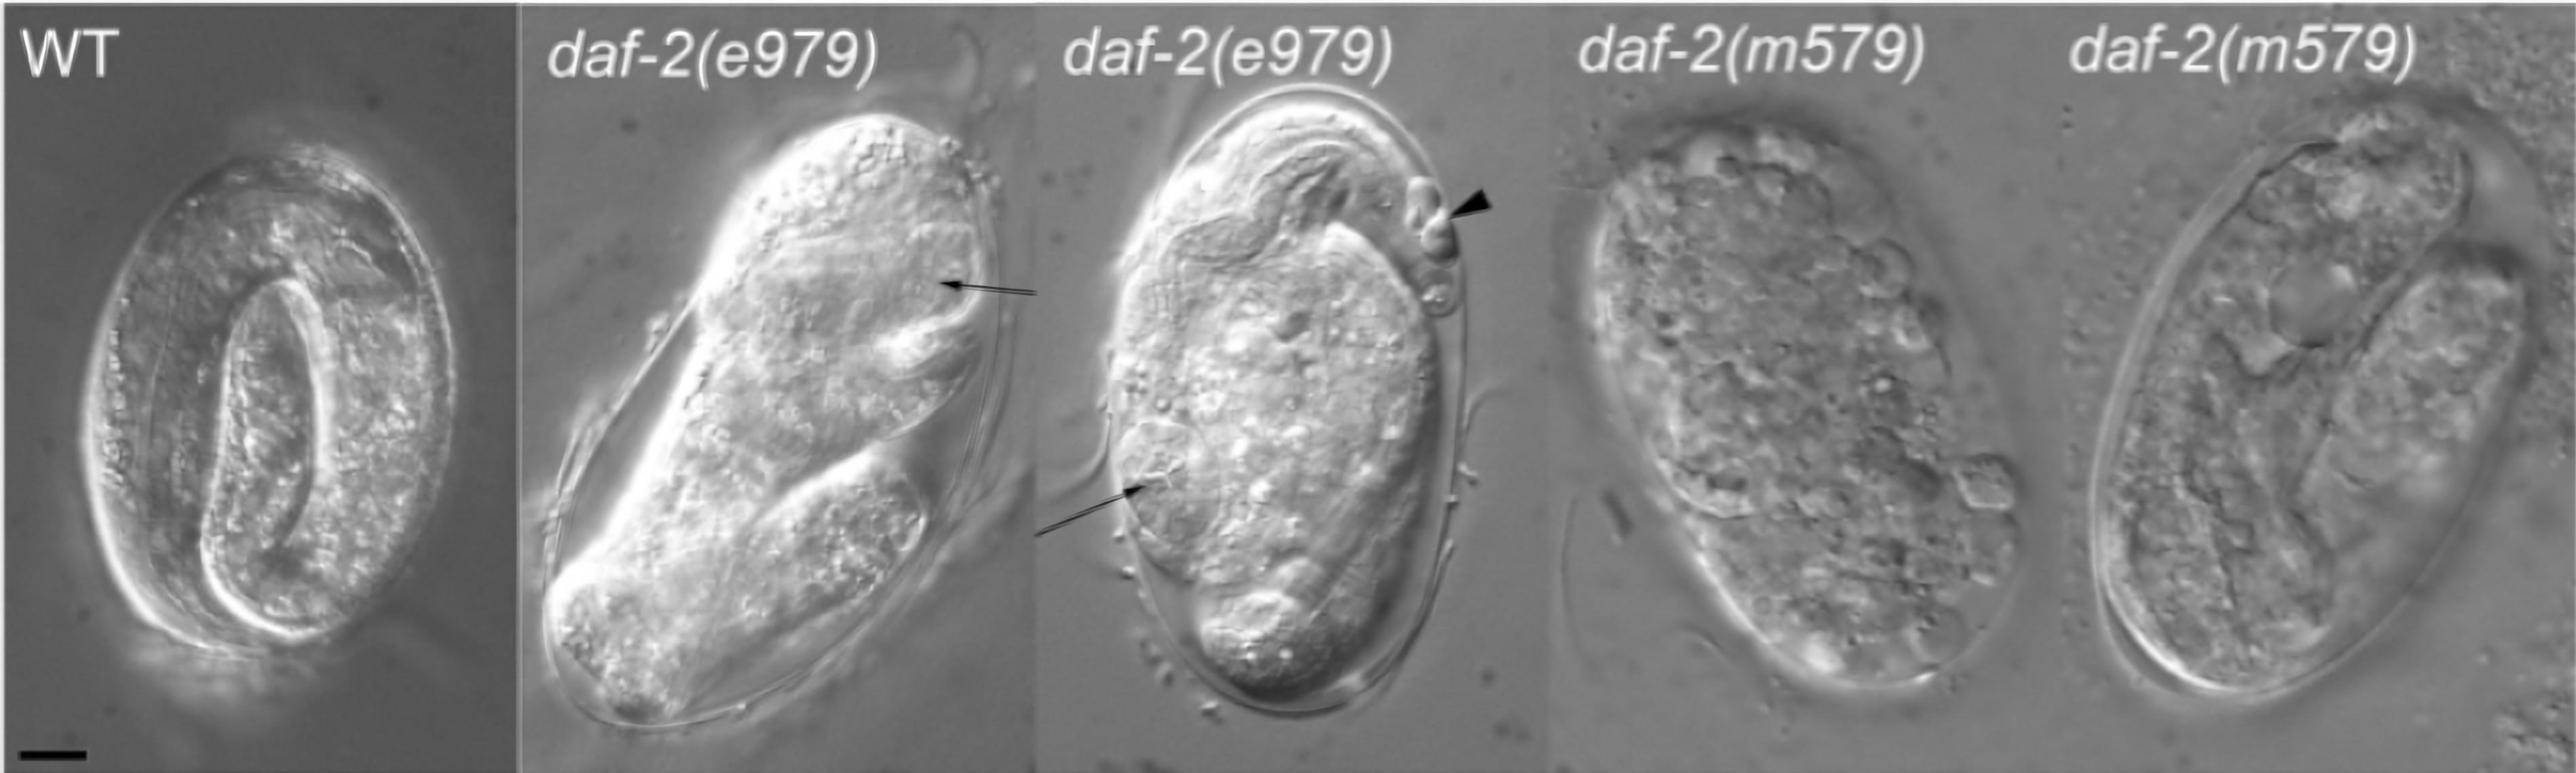 The daf-2 insulin receptor functions in C. elegans embryo elongation